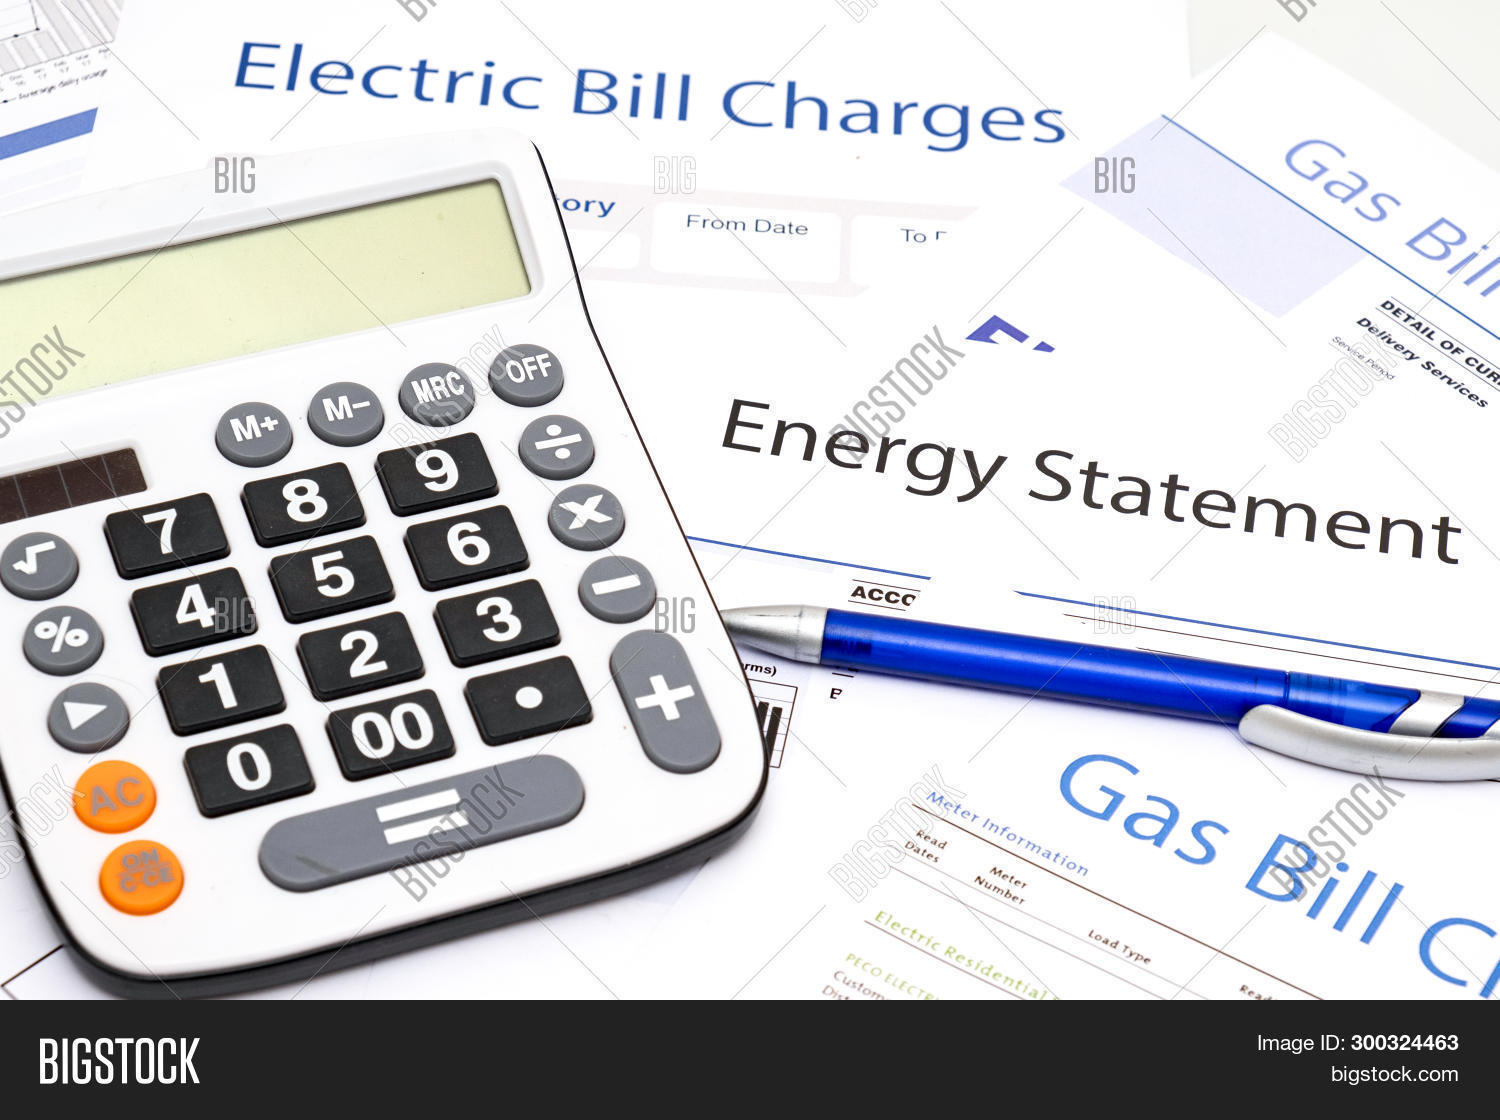 accounting,bill,bookkeeping,budget,calculate,charge,climate,consumption,cost,district,document,due,economic,economical,efficiency,electric,electrical,electricity,energy,environmental,expenditure,expense,expensive,family,fee,finances,financial,franchise,gas,graph,green,heat,heating,home,house,household,insulation,invoice,kilowatt,payment,power,rate,receipt,report,savings,taxes